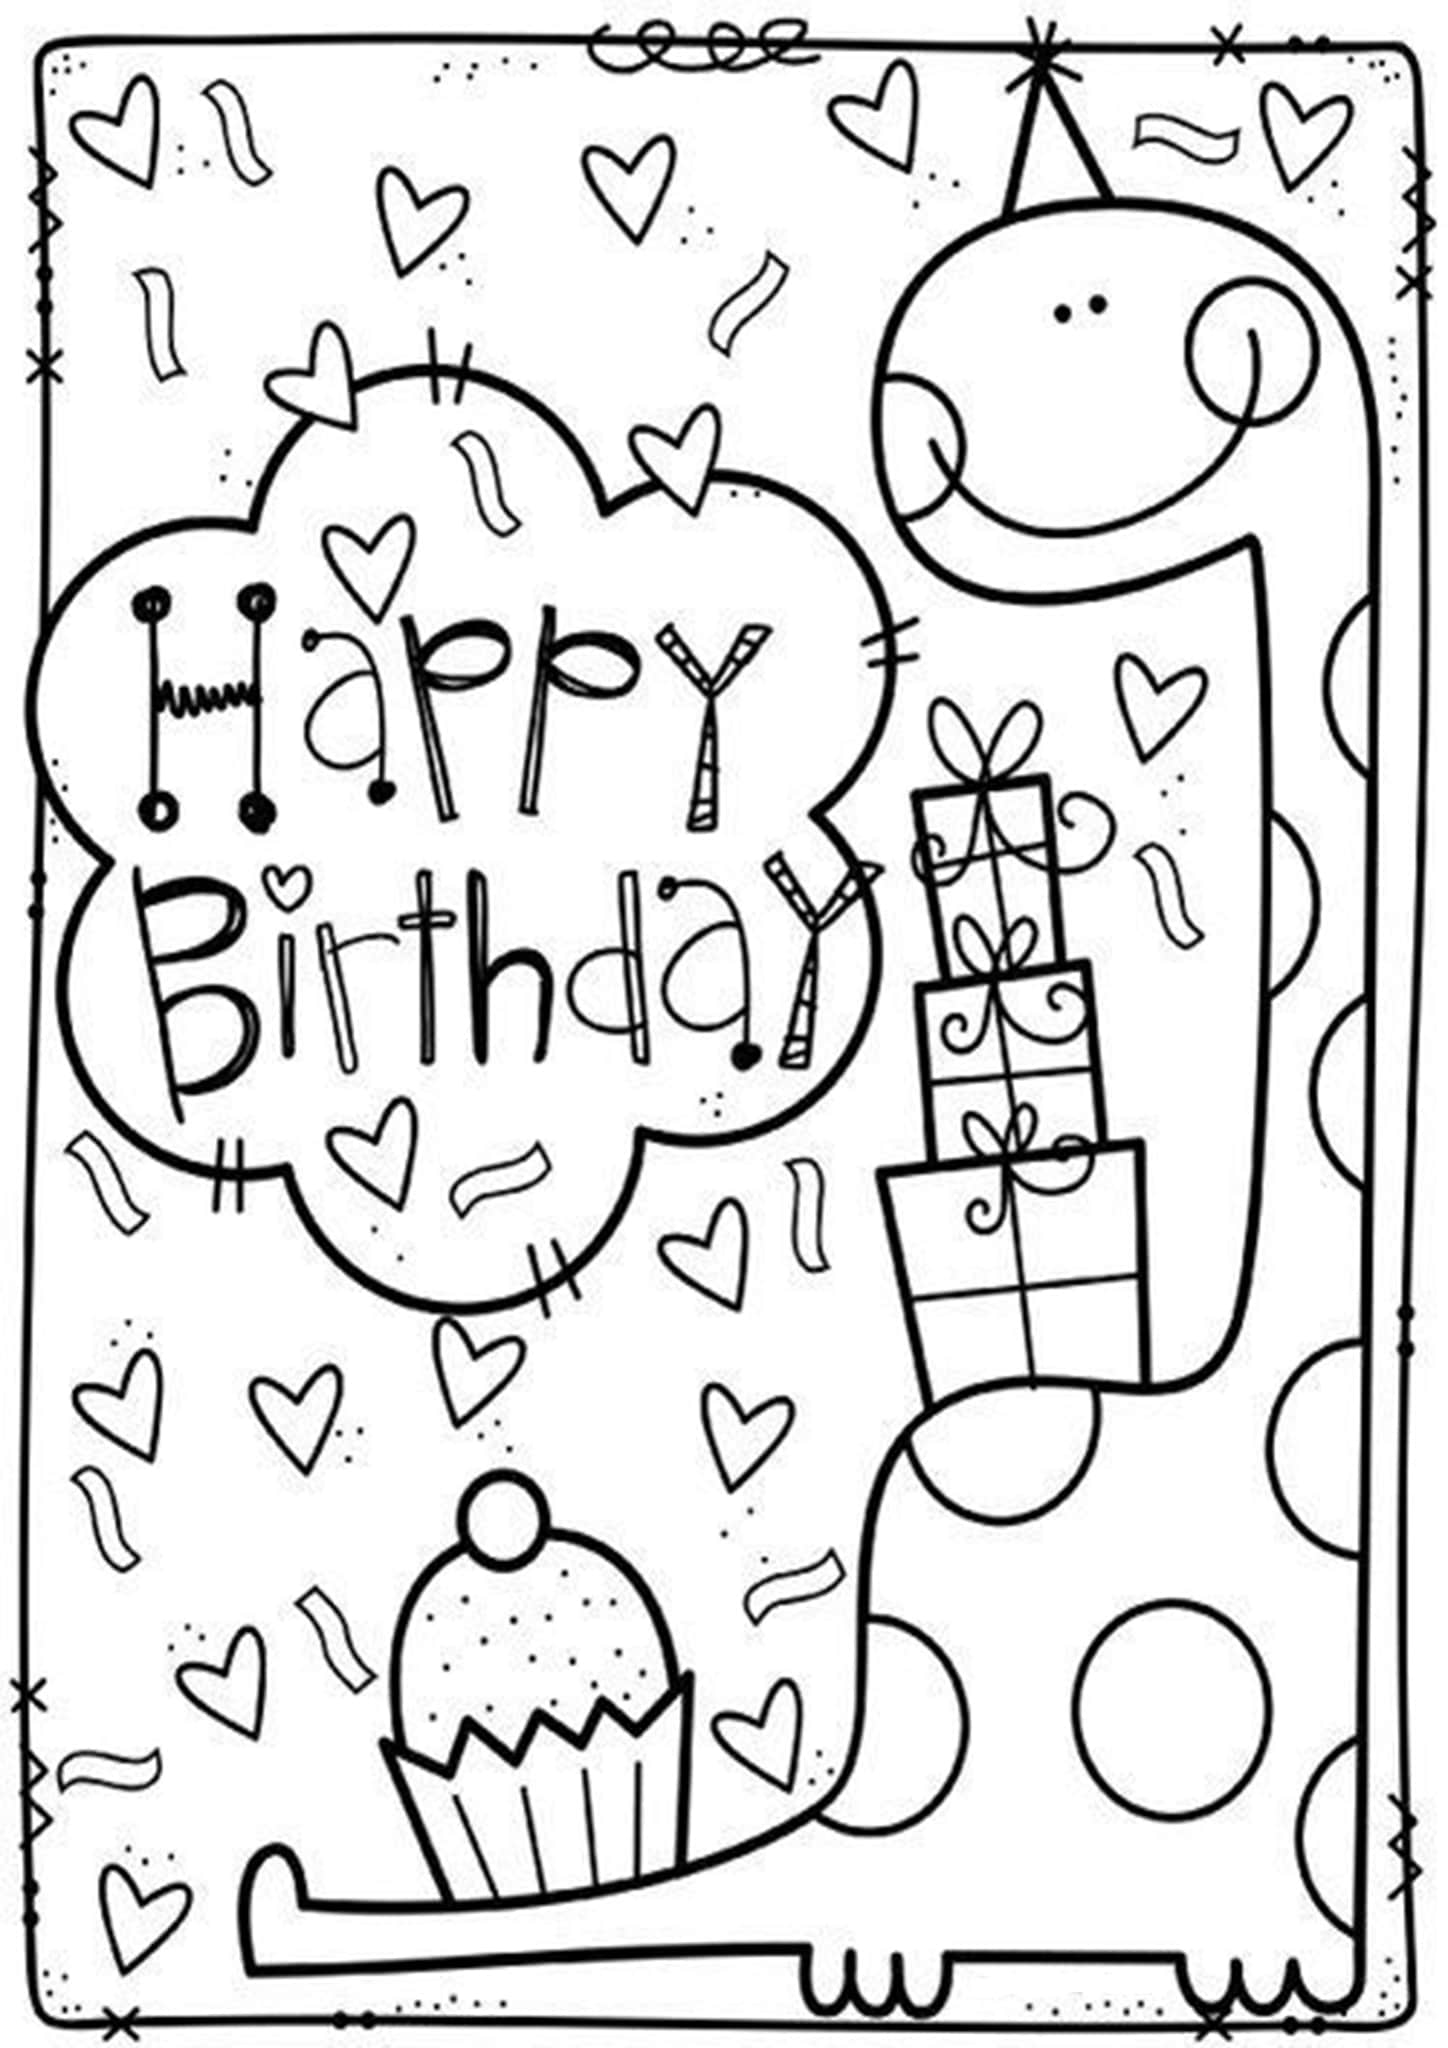 happy birthday coloring pages printable free easy to print happy birthday coloring pages tulamama coloring pages happy printable birthday